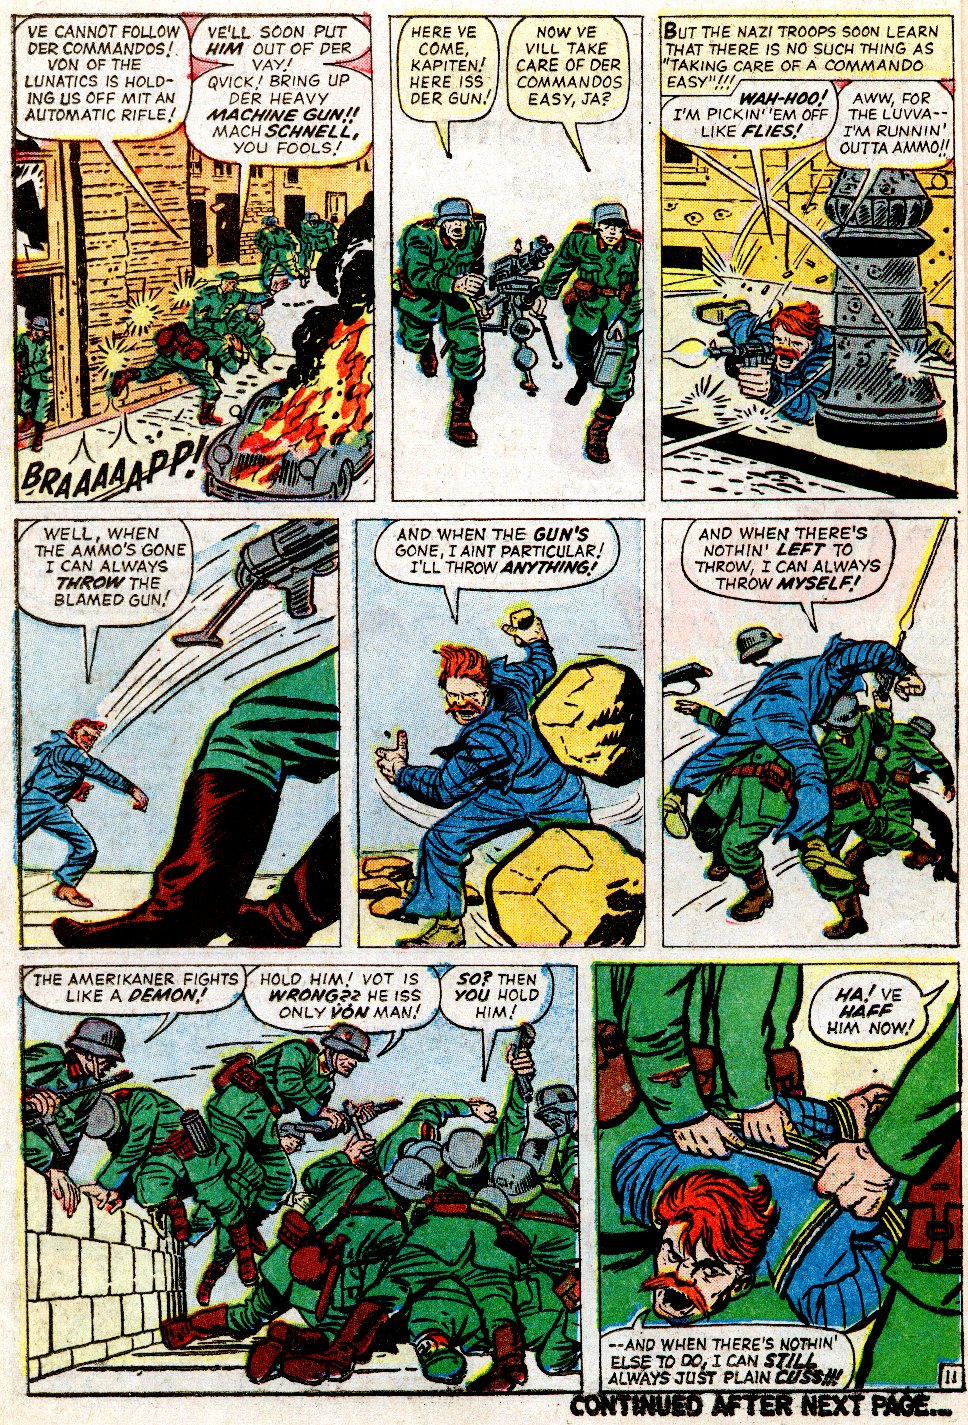 Read online Sgt. Fury comic -  Issue #2 - 14